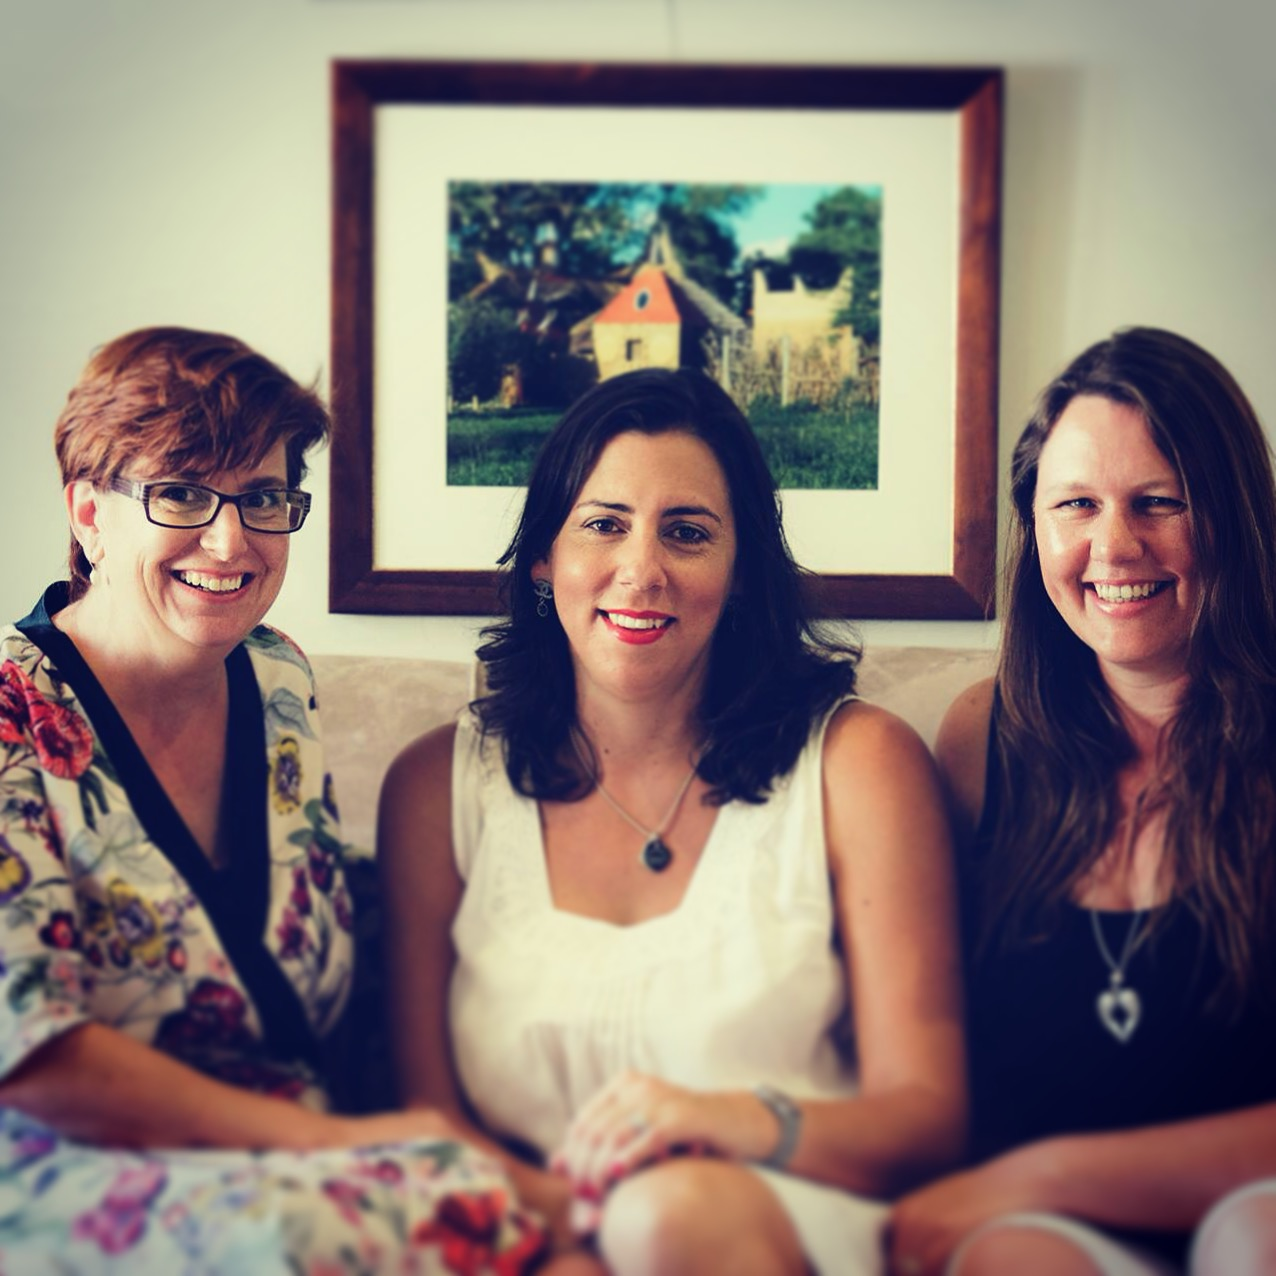 Sally, Danielle and Sonia                                                        Image One Giant Leap Images